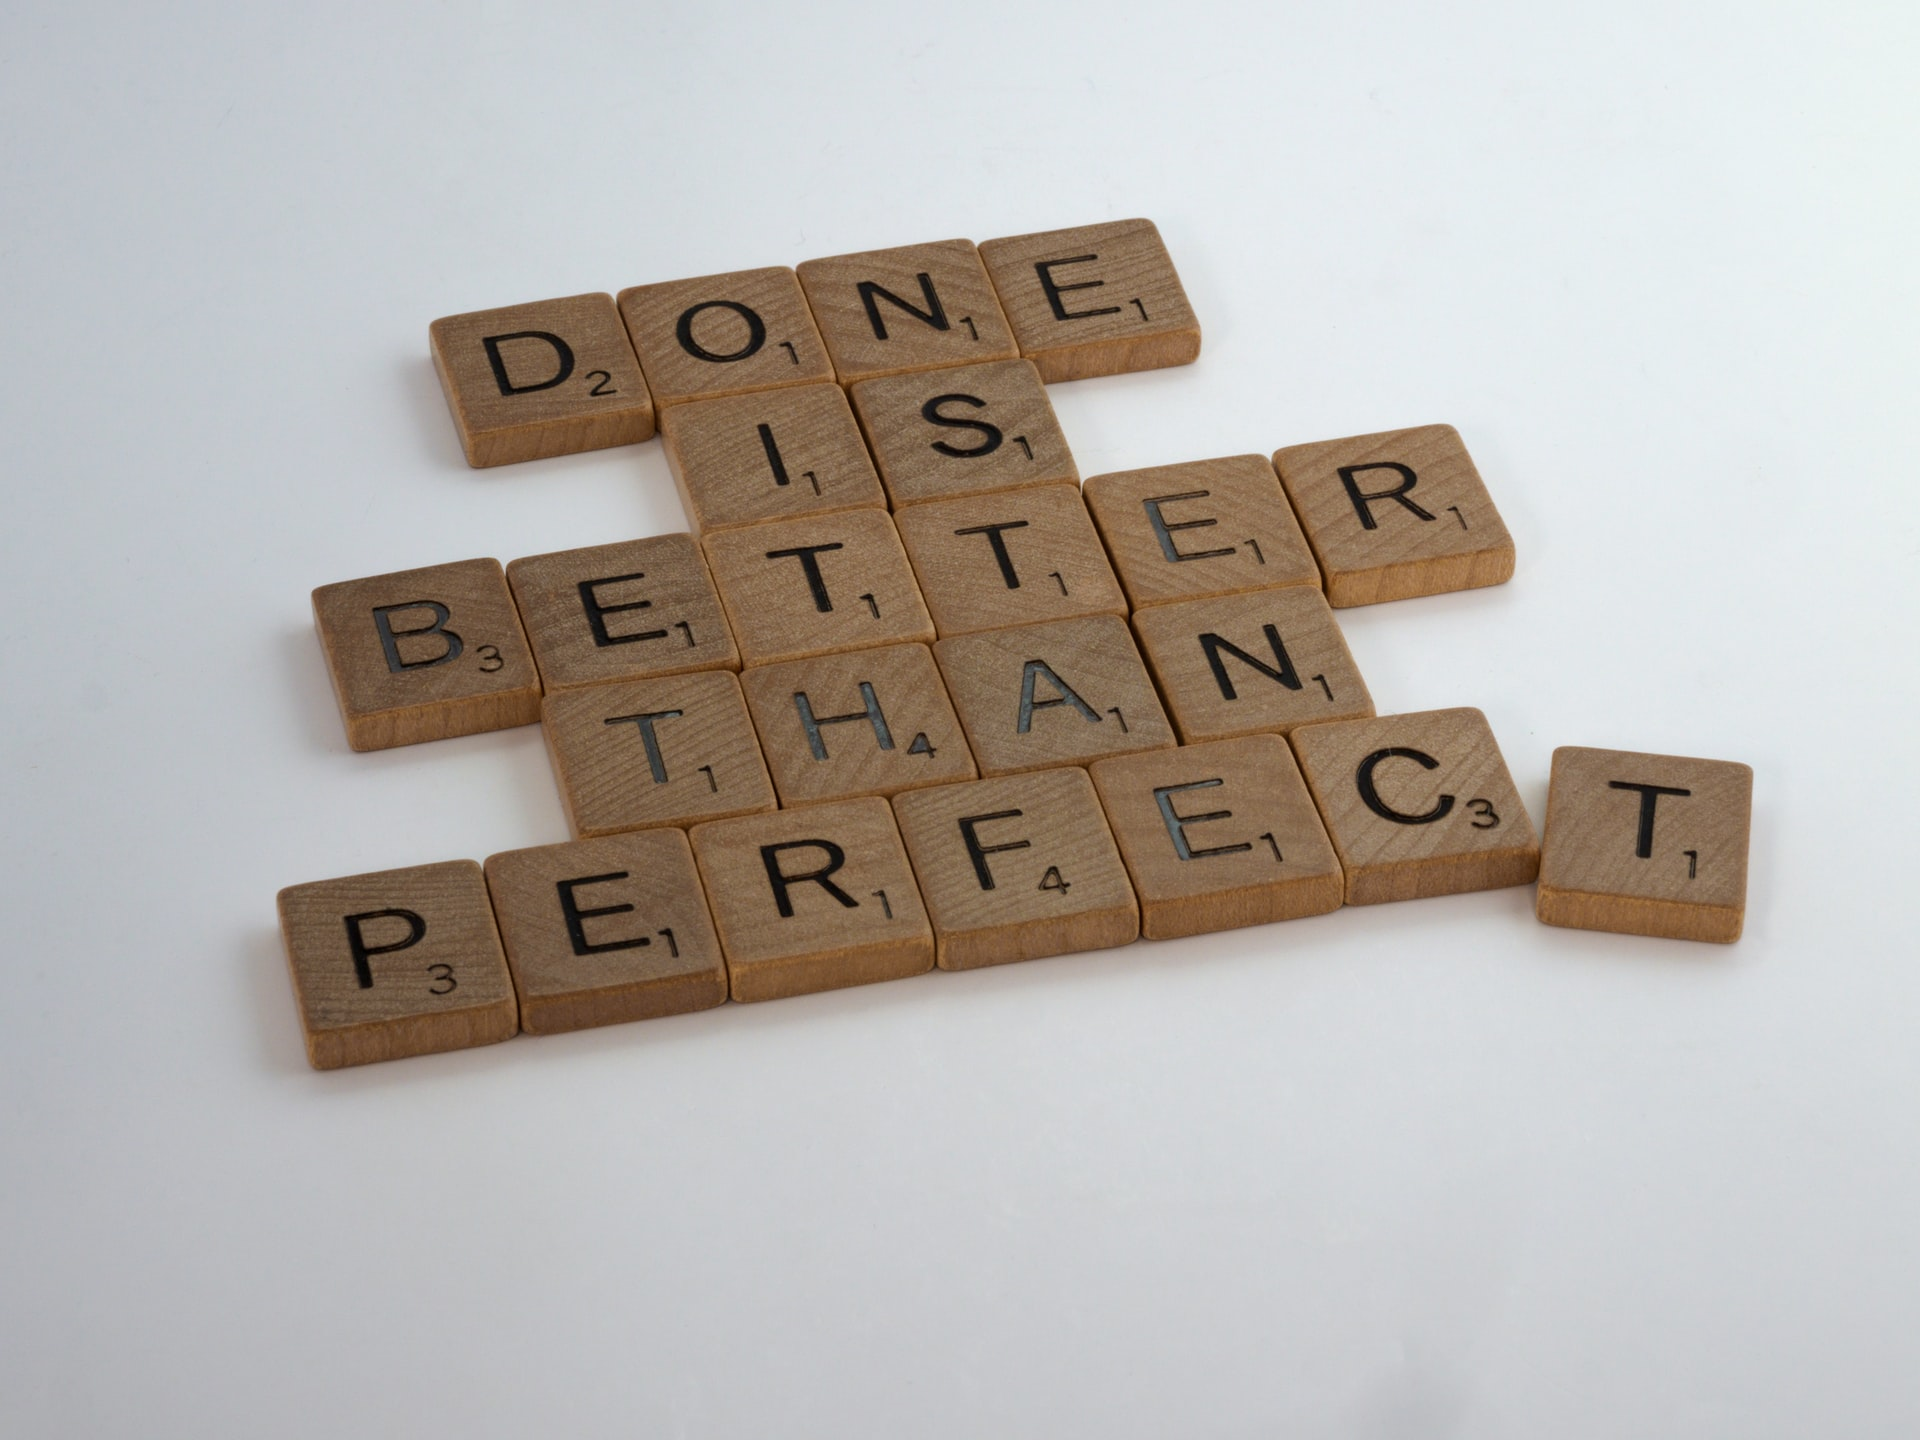 10 Ways to Rebel Against Perfectionism